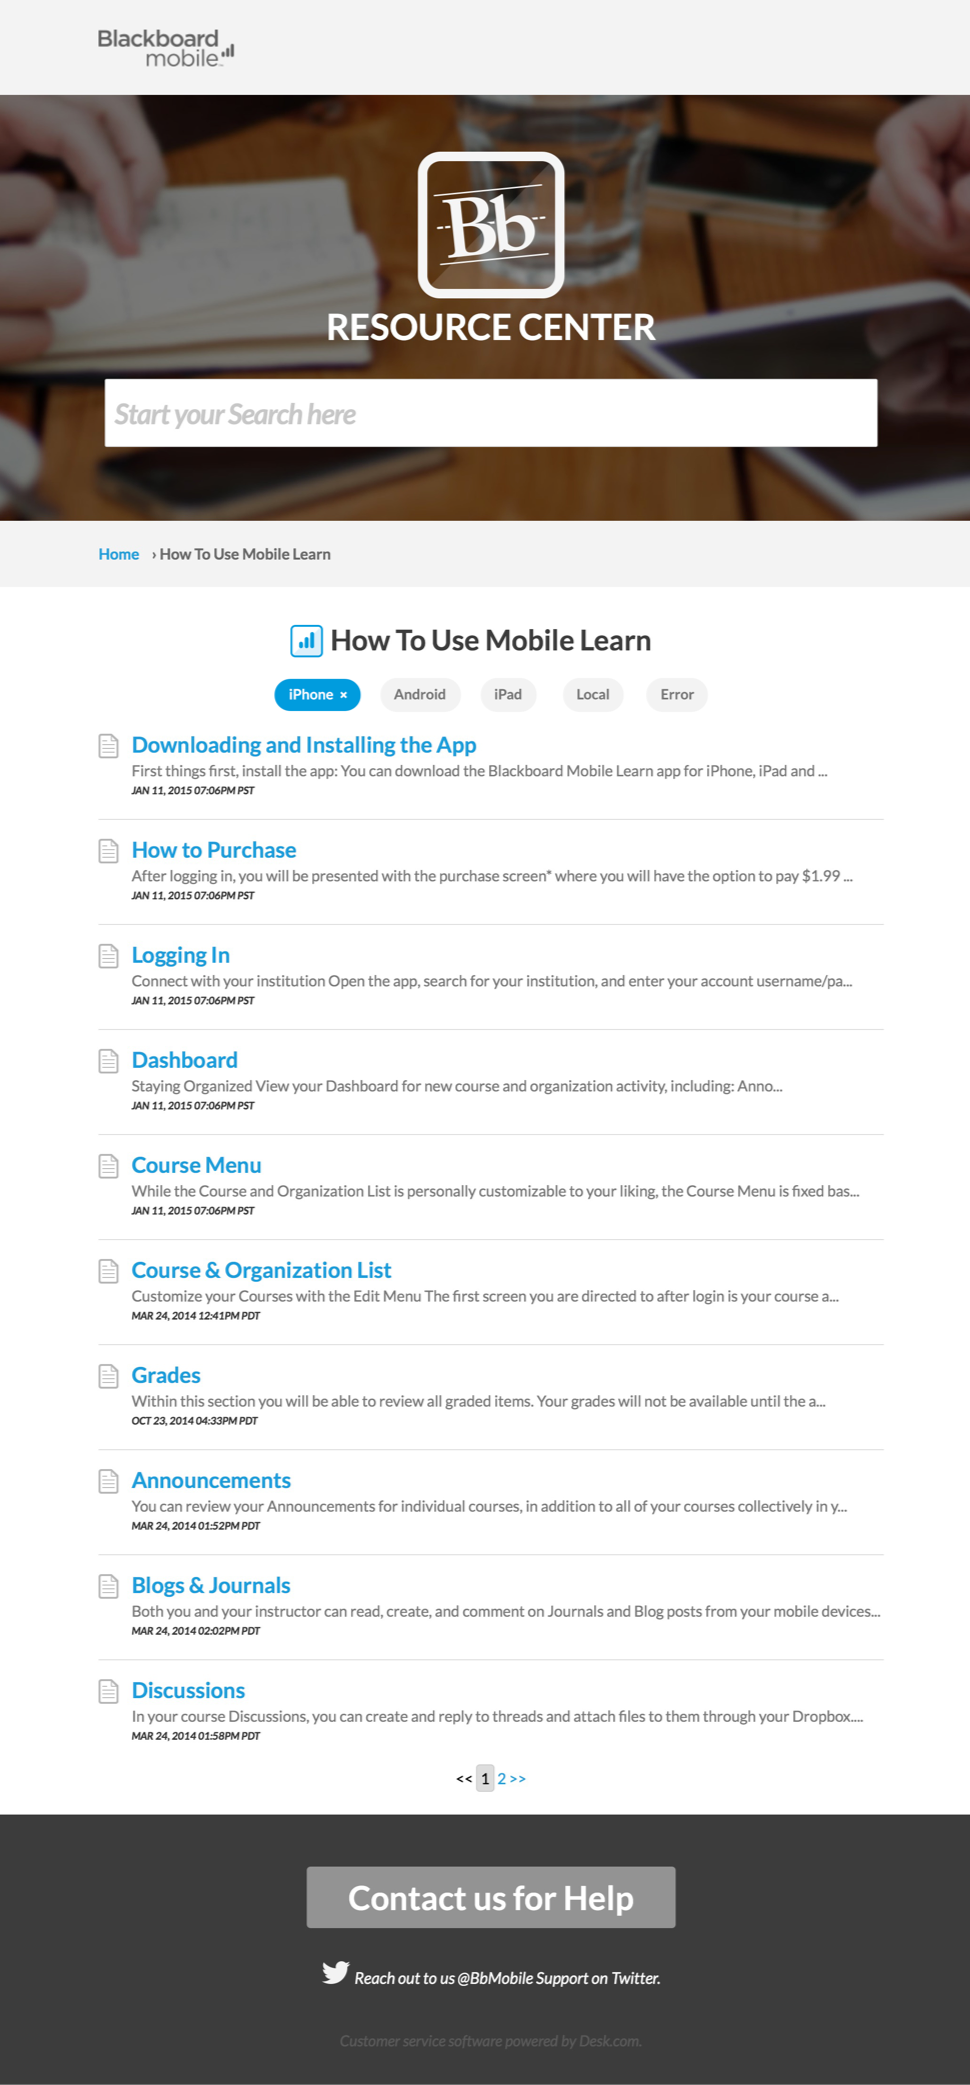 mobile learn helpdesk help article